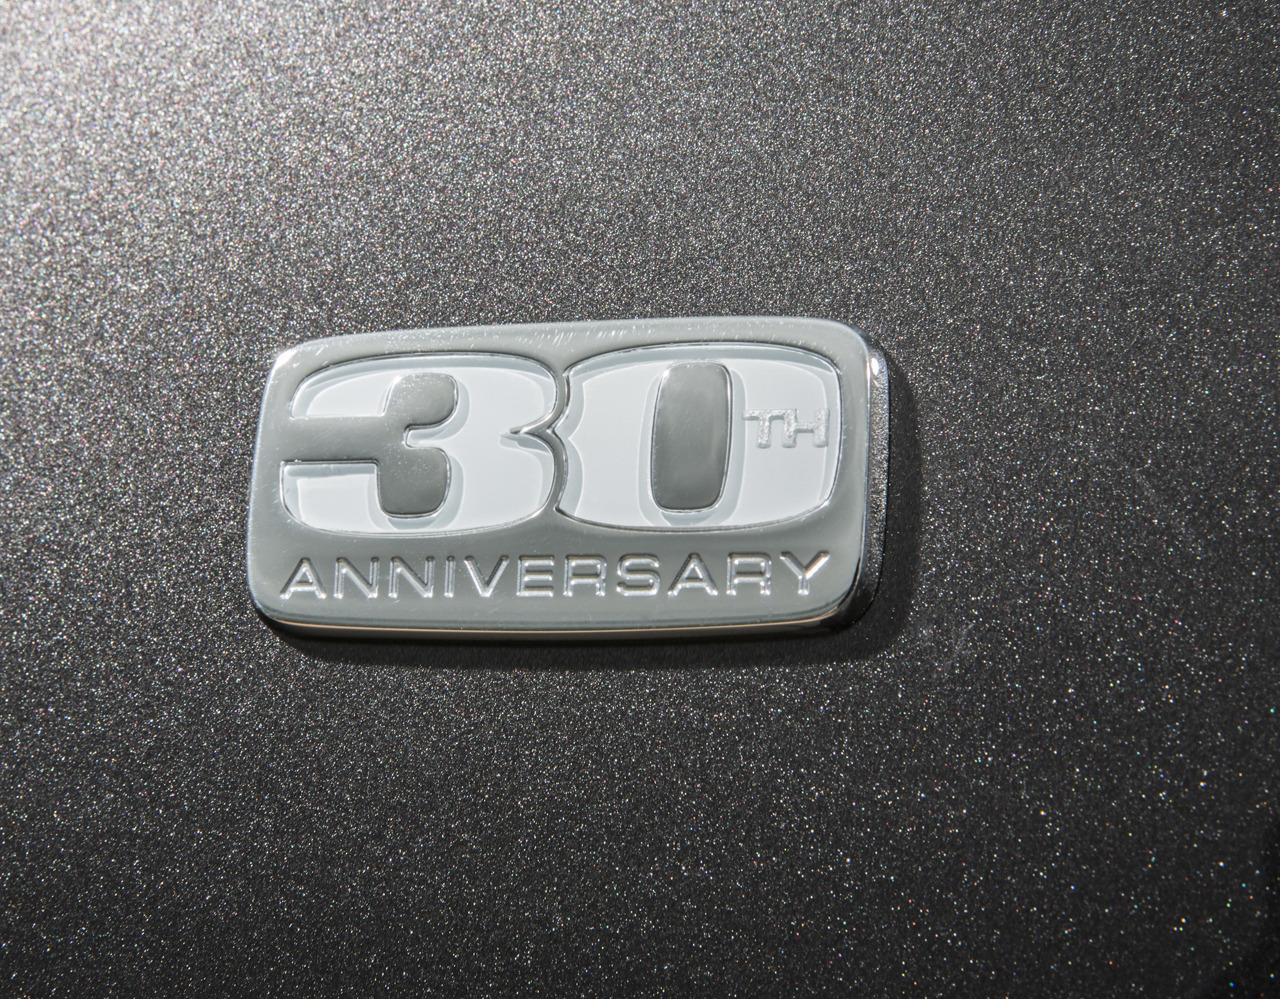 2014 Dodge Grand Caravan 30th Anniversary Edition Unveiled